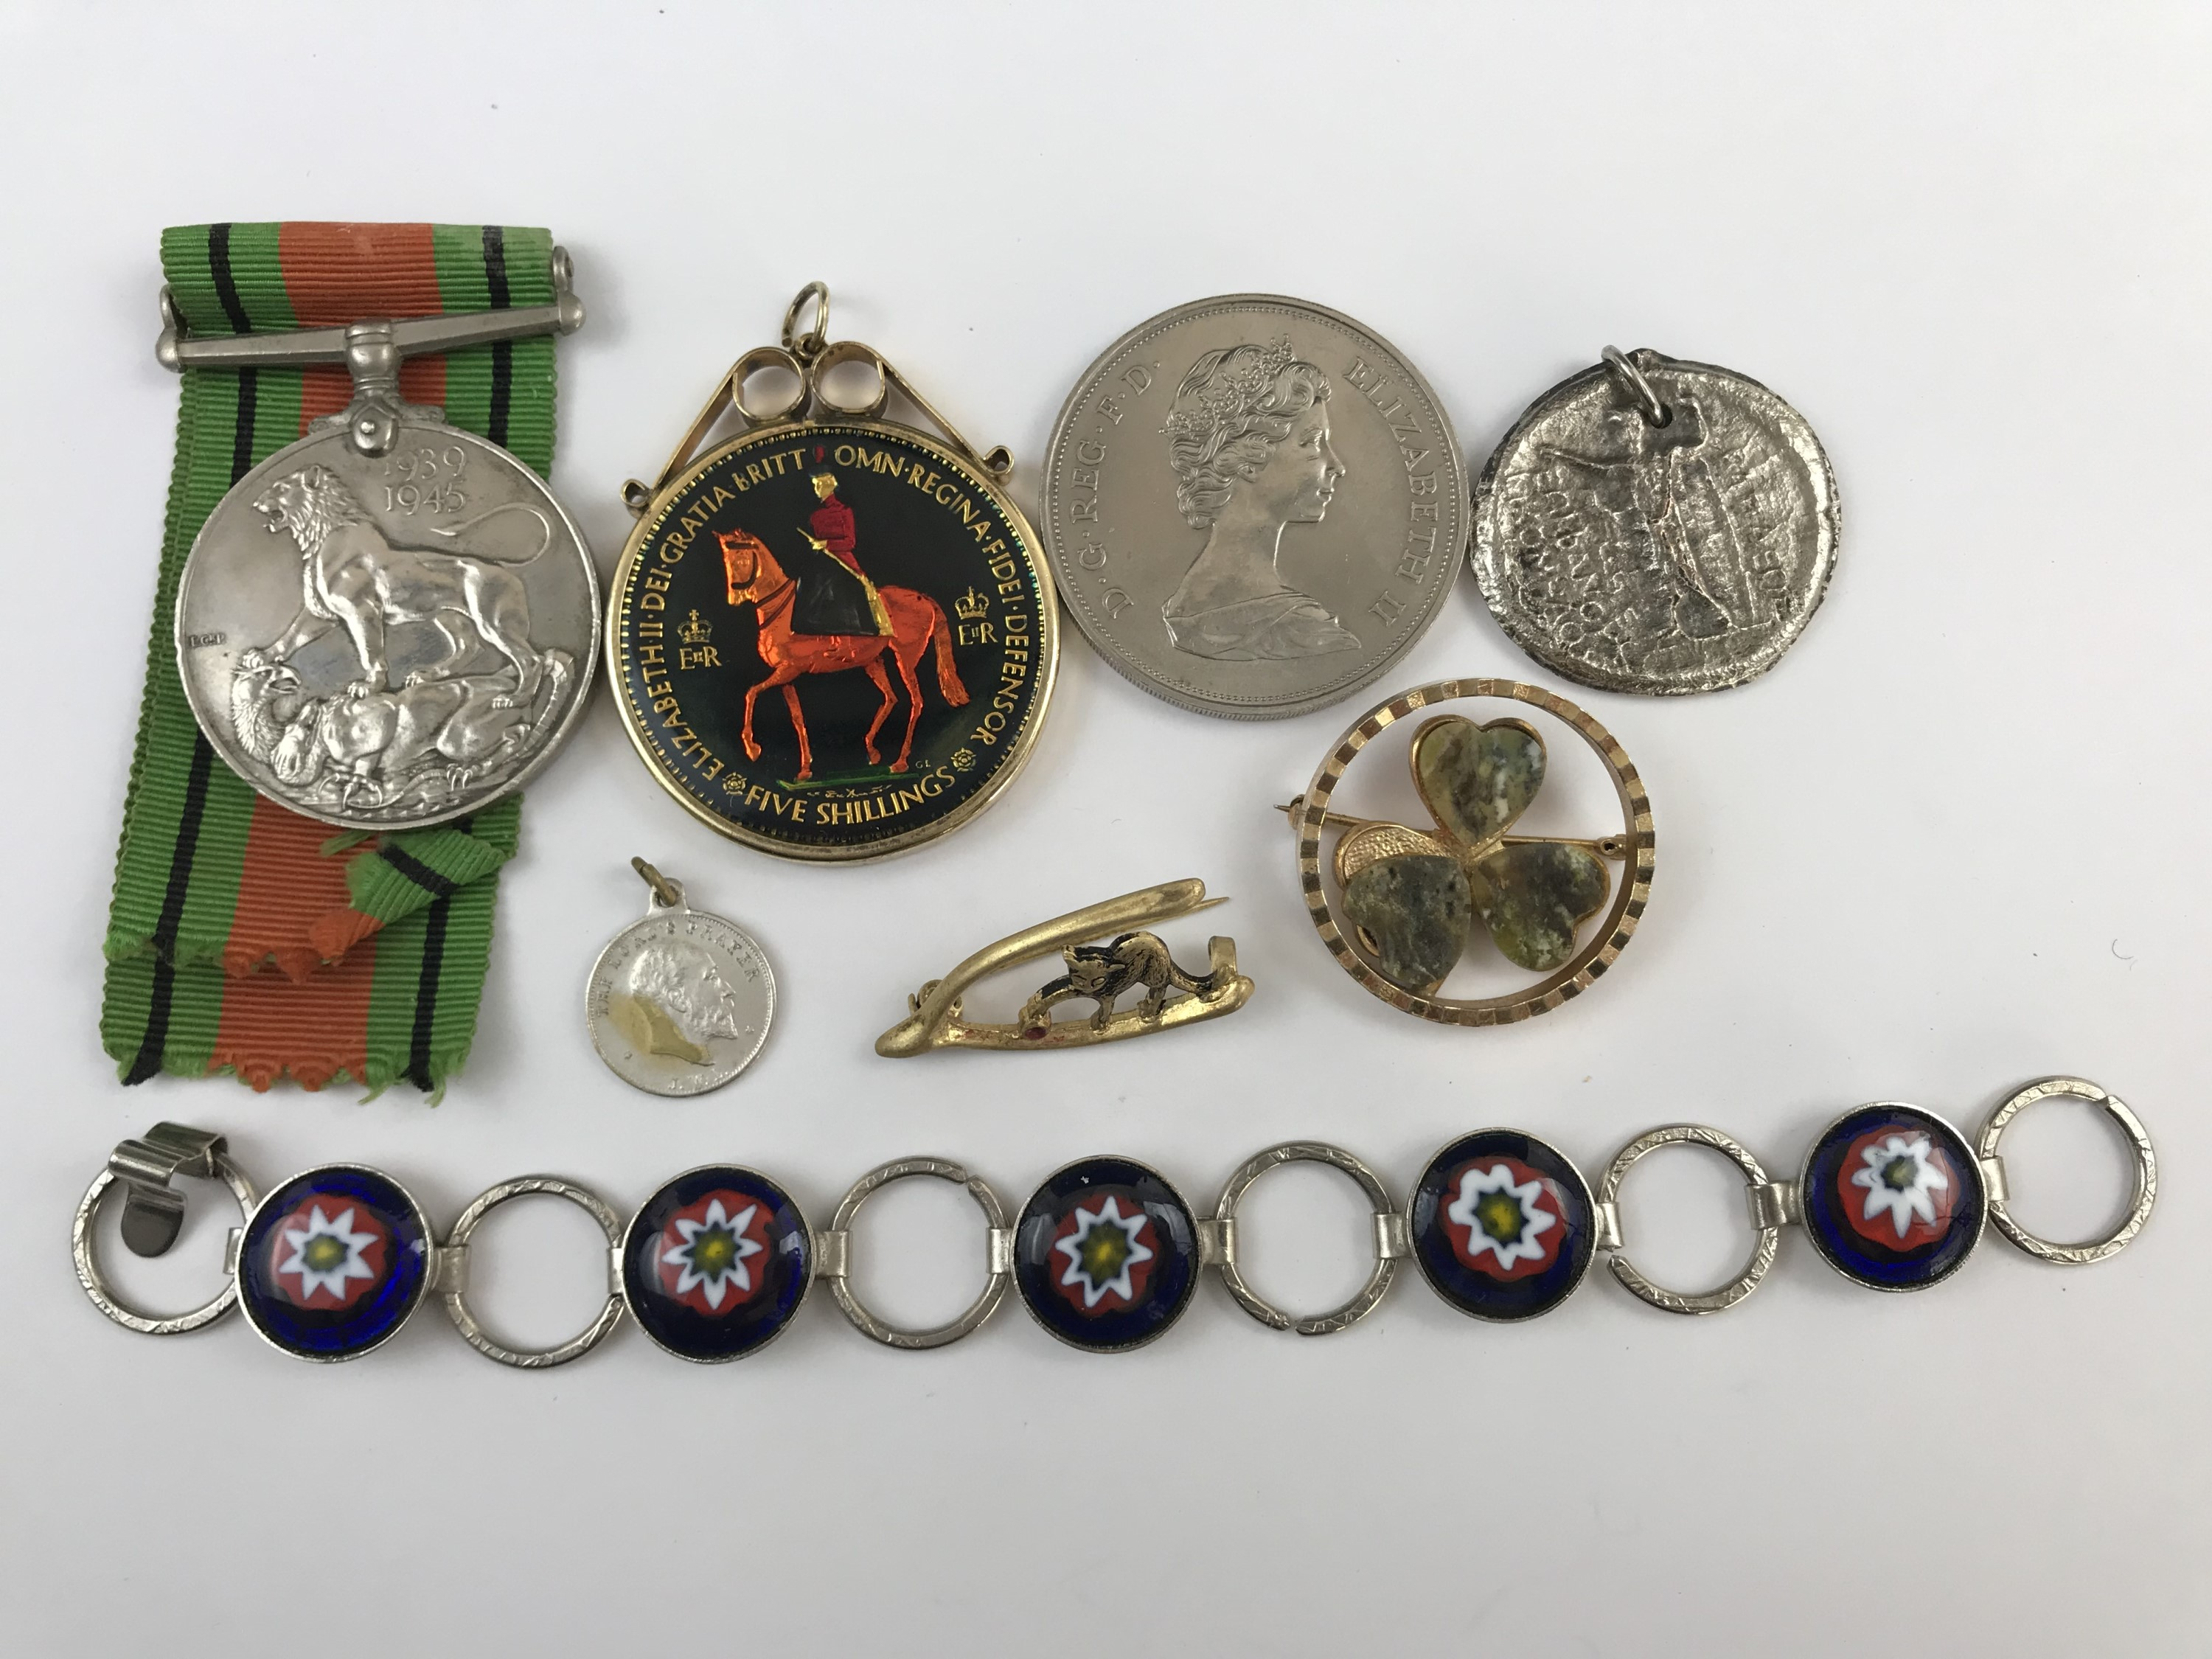 Lot 53 - Collectors' items including a Second World War Defence Medal, an Elizabeth II Silver Jubilee royal